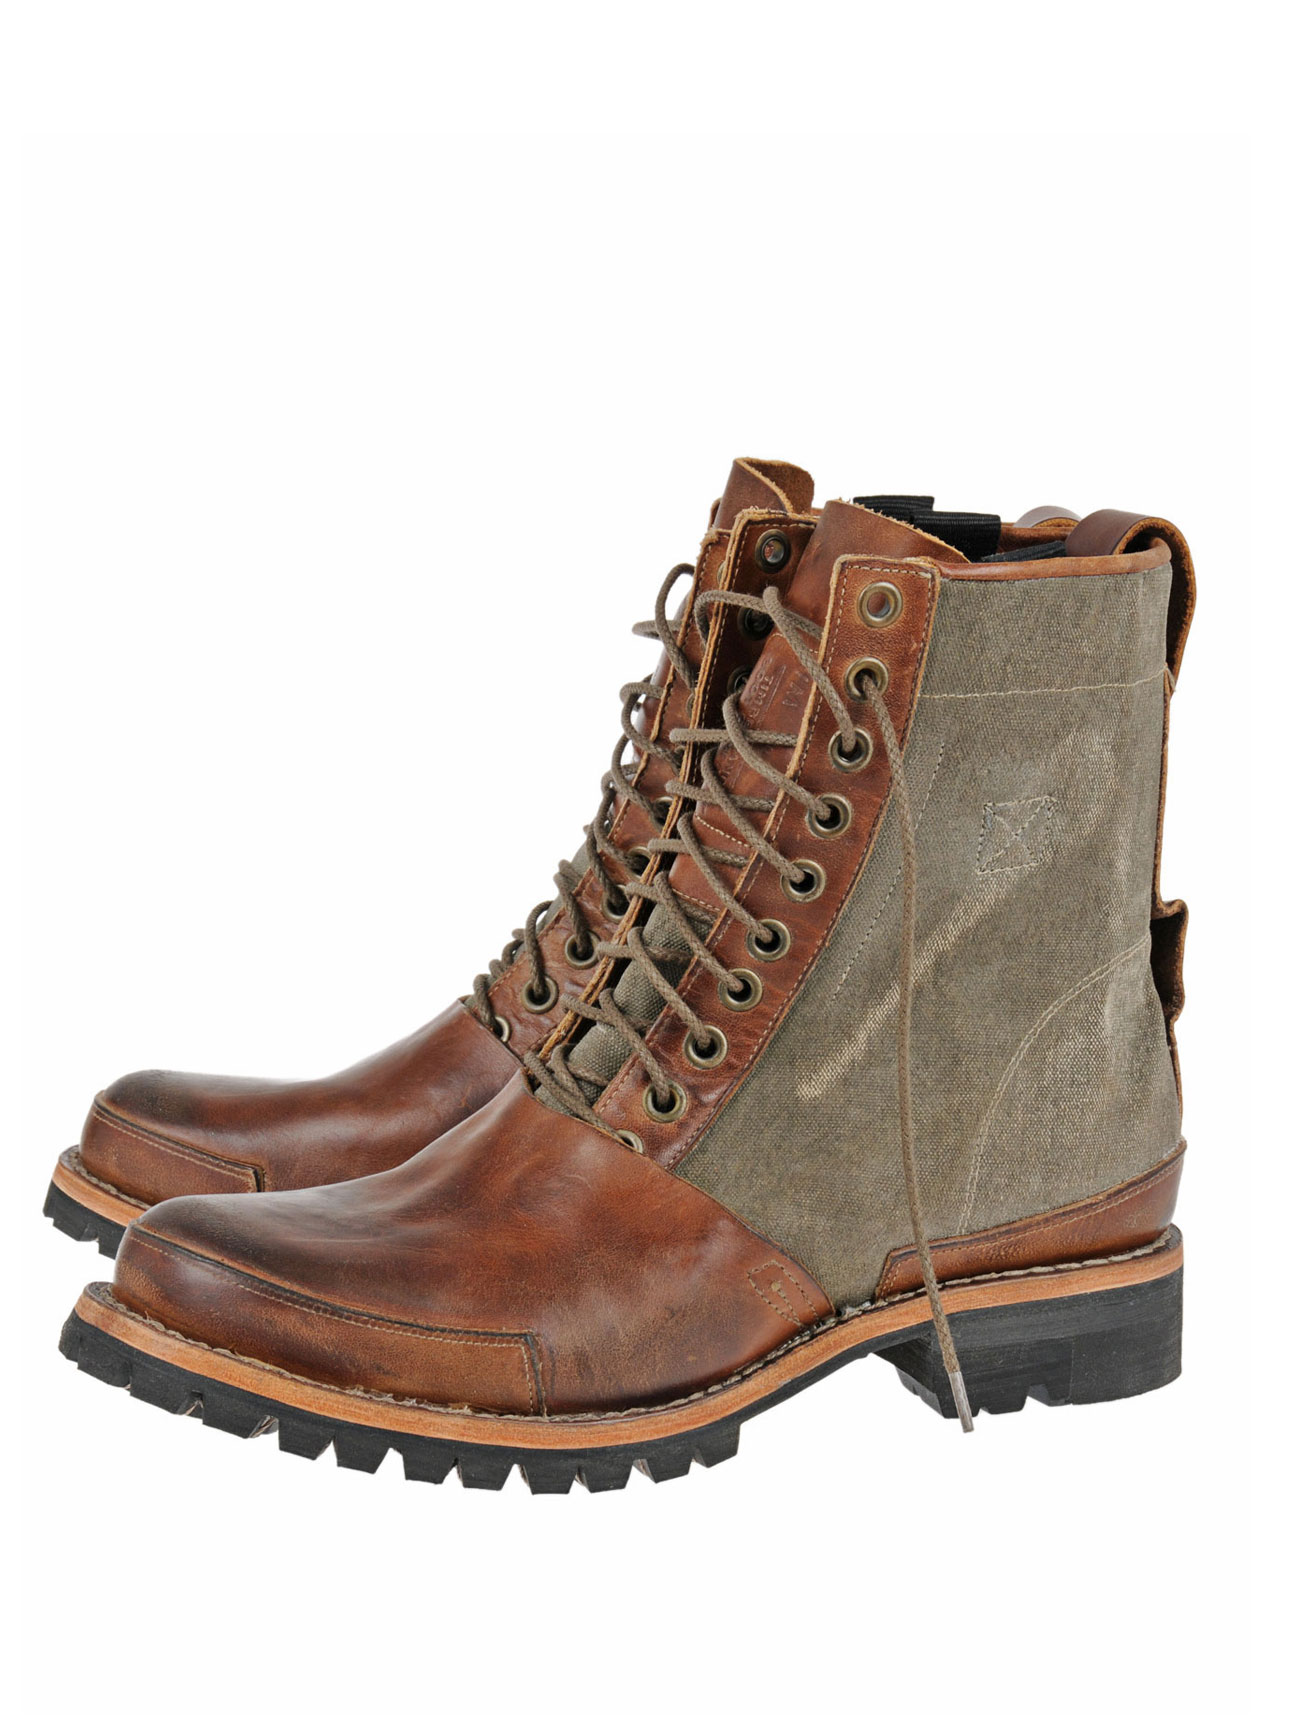 timberland tackhead winter 8 inch boot in brown for lyst